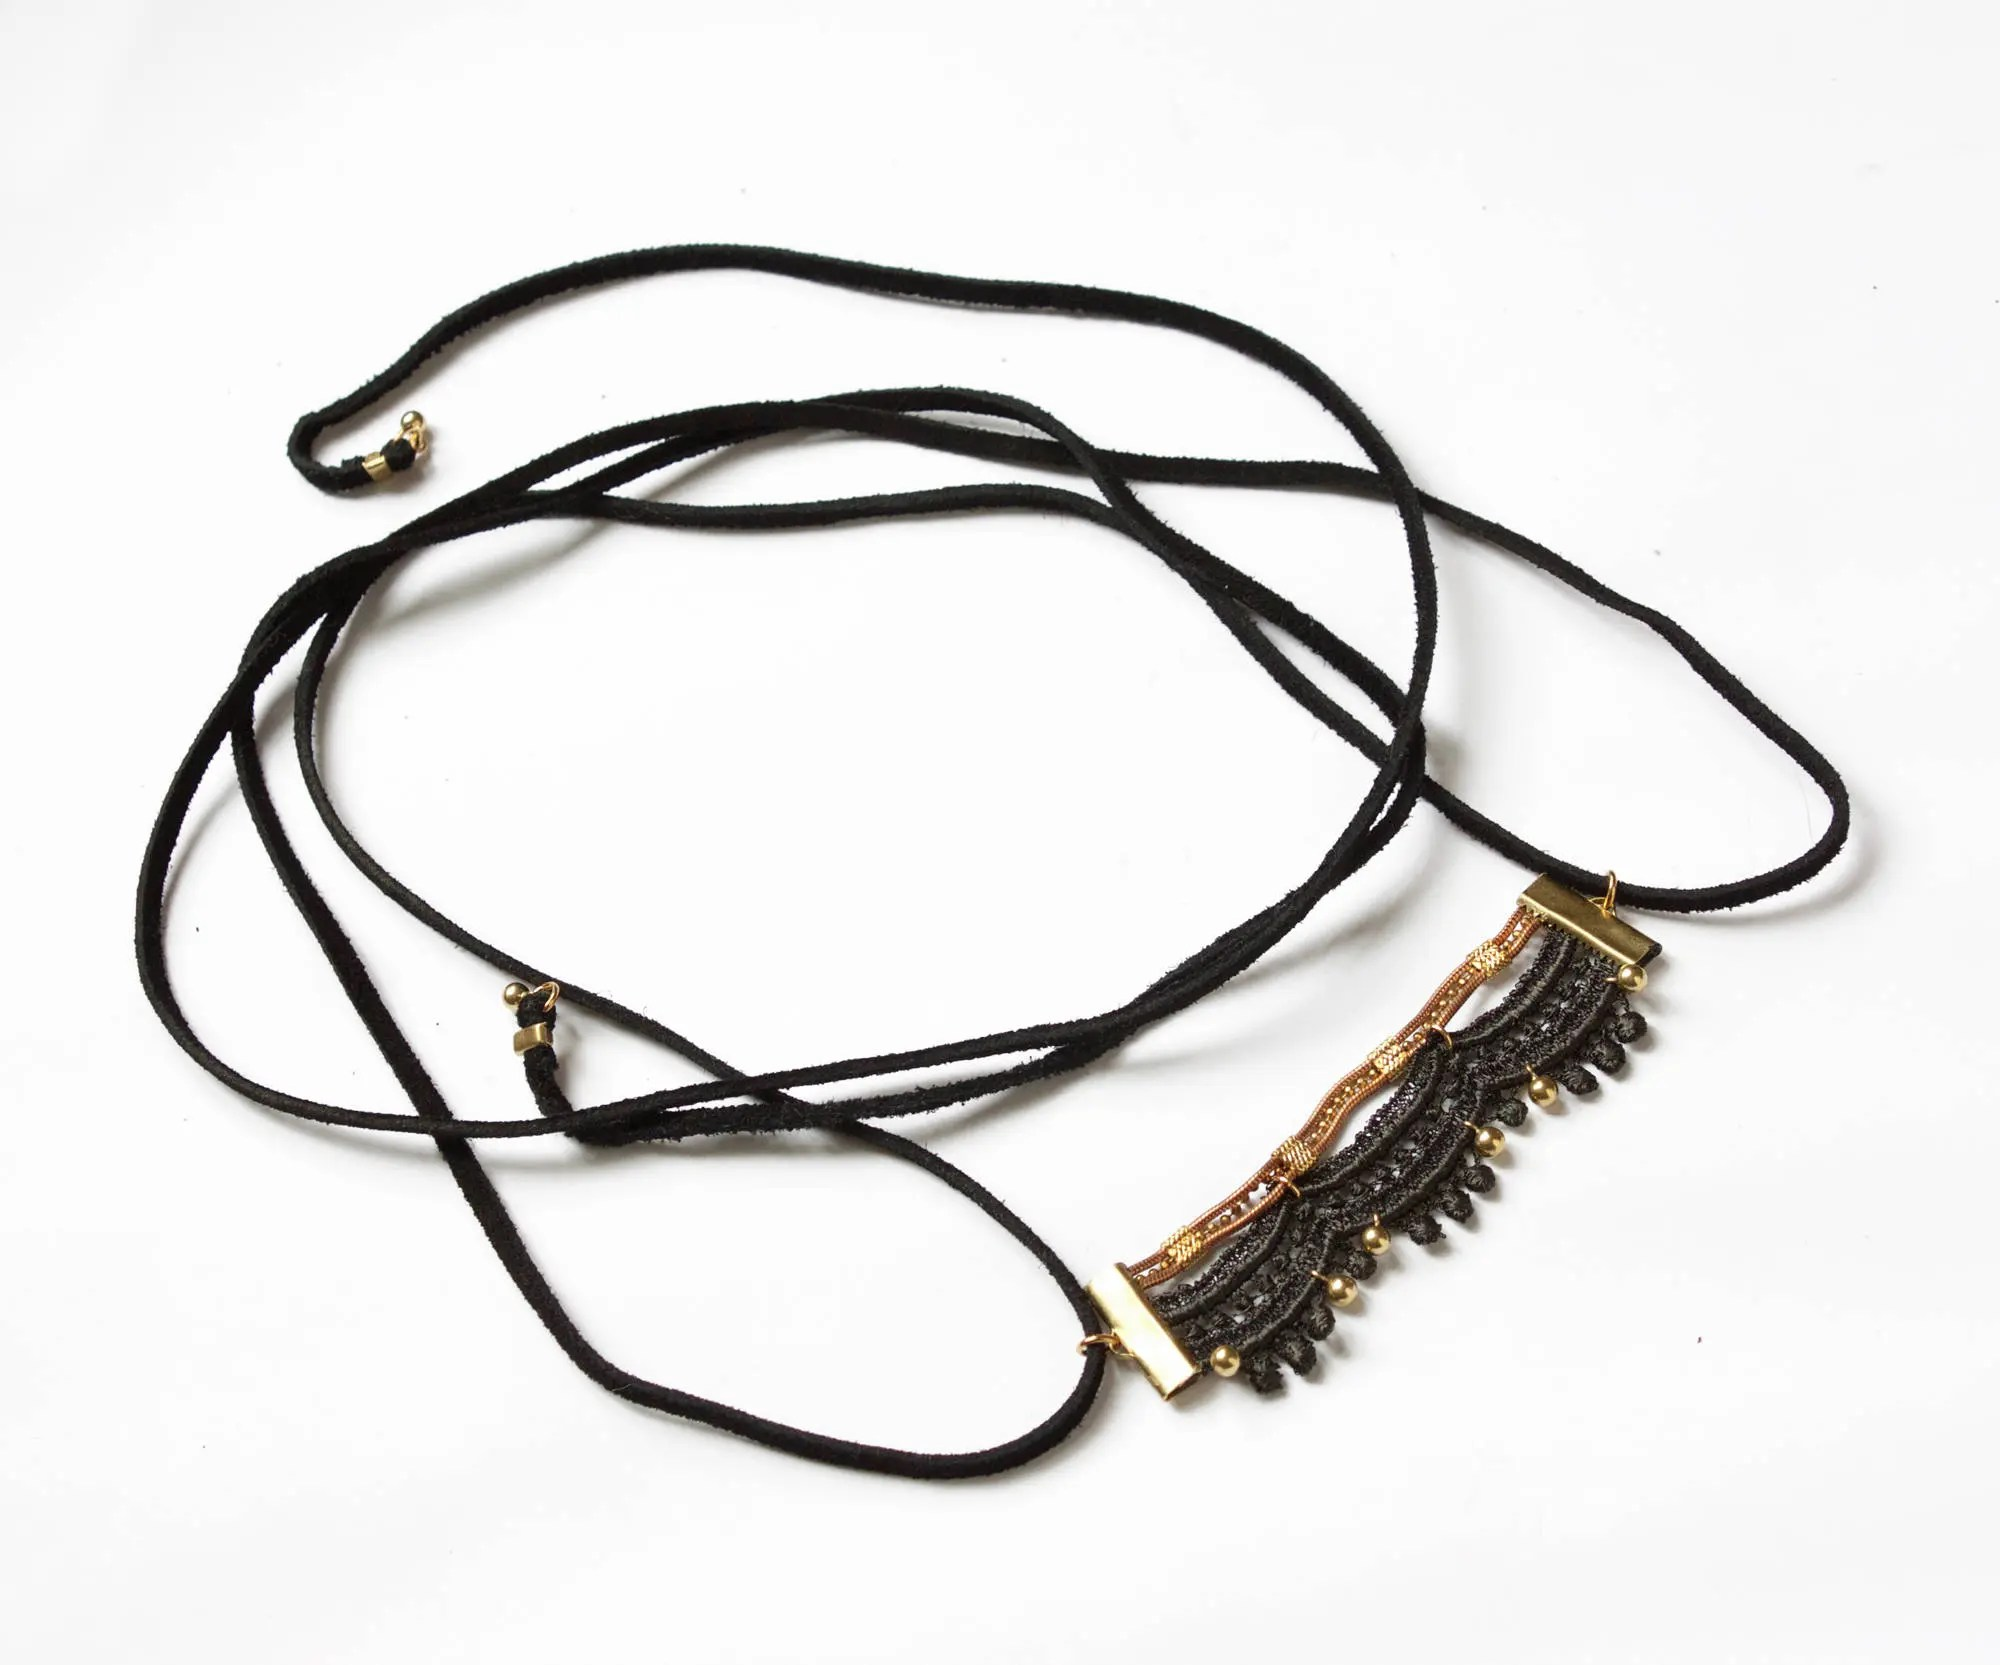 Lace Choker Necklace Amp Body Harness Jewelry Percia Black